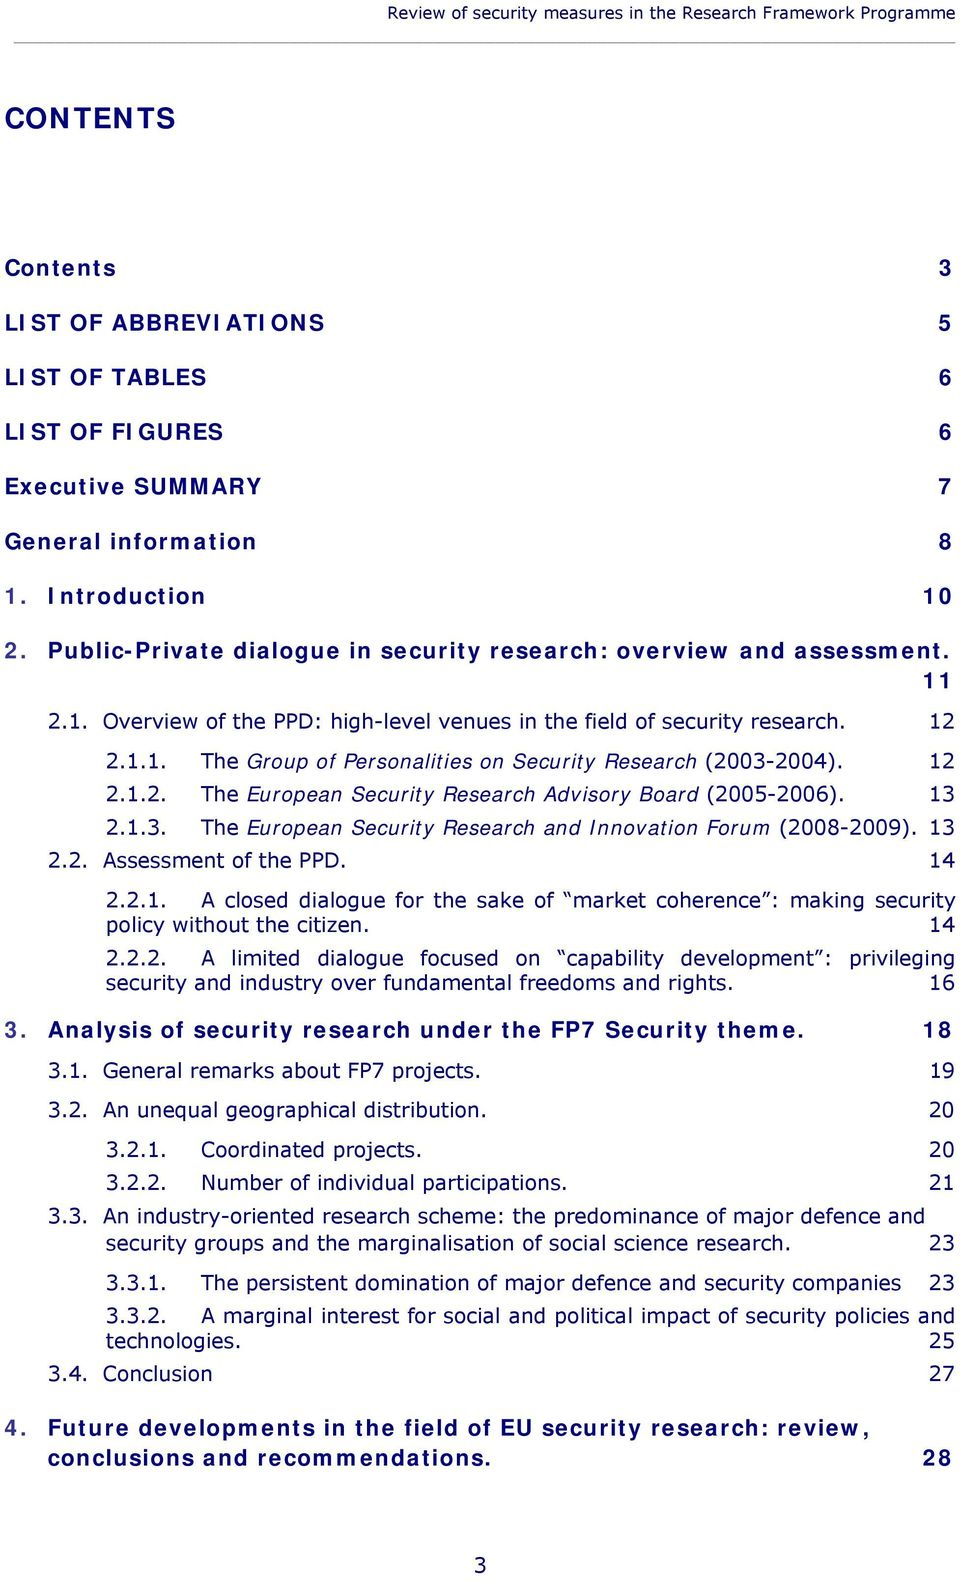 12 2.1.2. The European Security Research Advisory Board (2005-2006). 13 2.1.3. The European Security Research and Innovation Forum (2008-2009). 13 2.2. Assessment of the PPD. 14 2.2.1. A closed dialogue for the sake of market coherence : making security policy without the citizen.